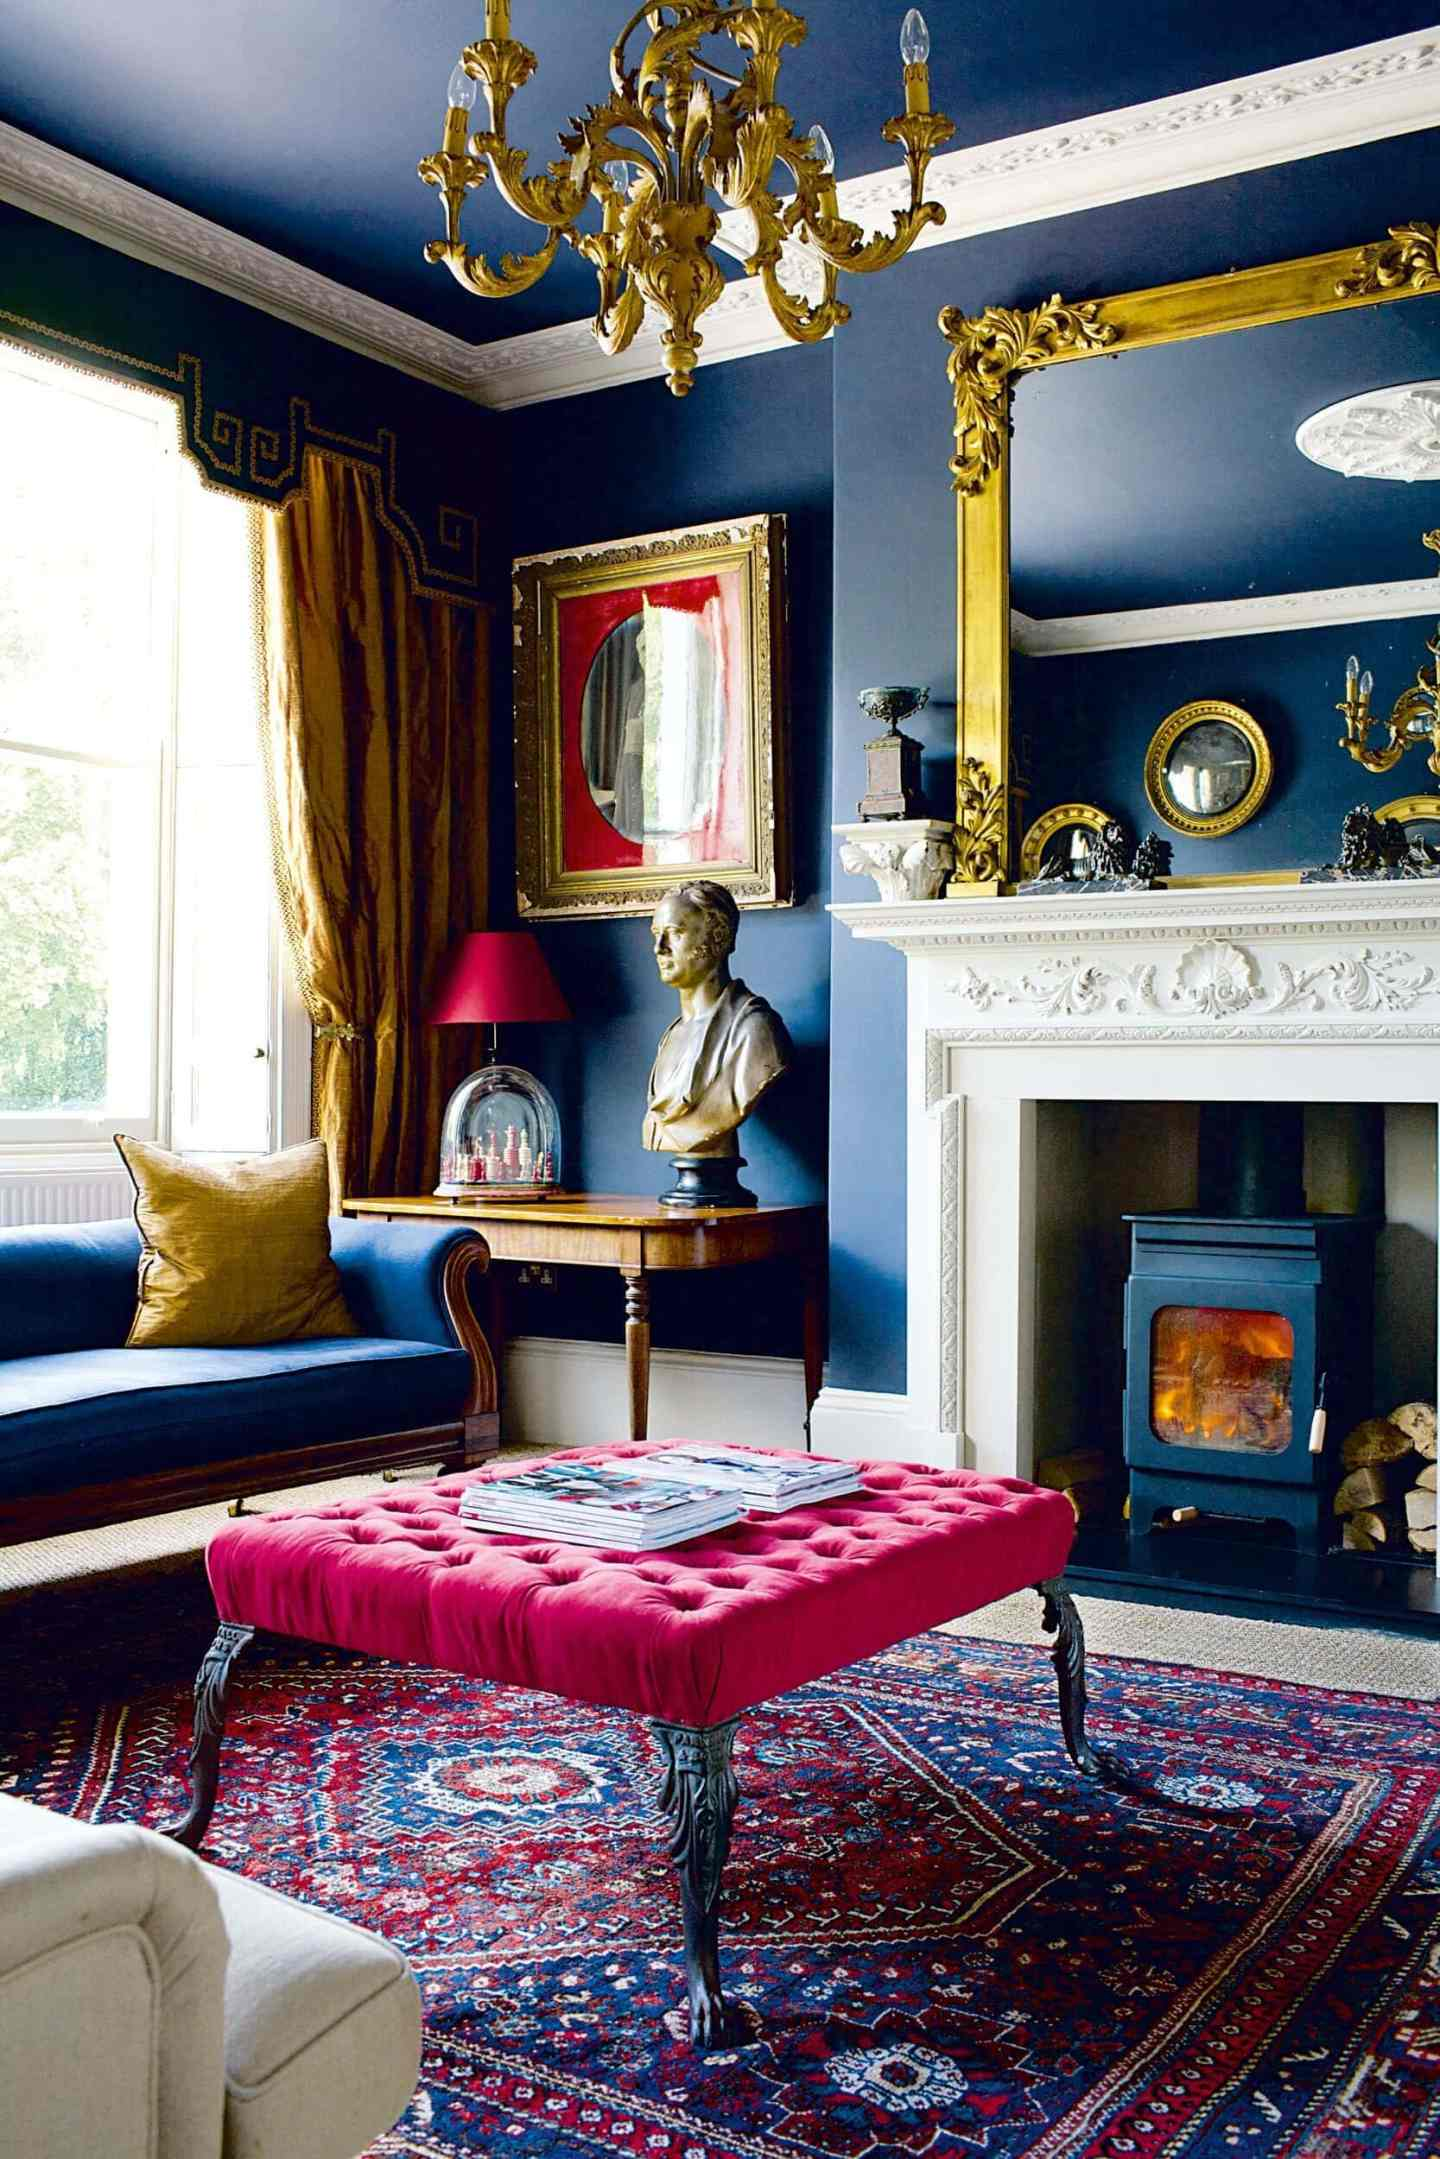 A room that has it all, dark inky walls and ceilings to match, detailed cornices and ceiling rose with gold details to bring the room beautifully together.  www.realhomes.co.uk  Image Credit: Grant Scott